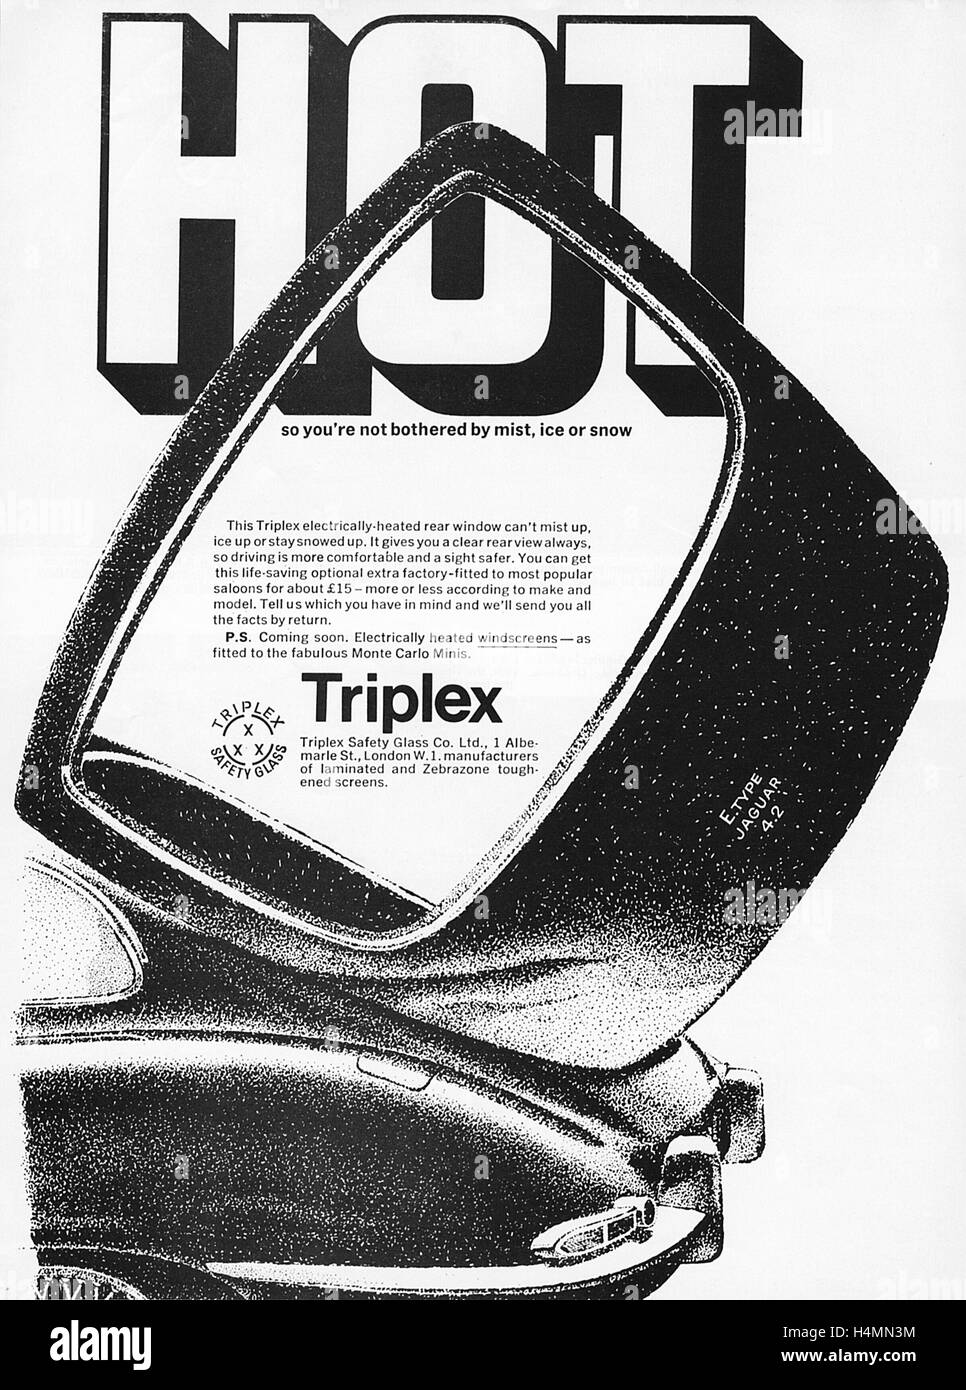 Advert for Triplex electrically heated rear windows from a Motor Sport Magazine in 1962. - Stock Image